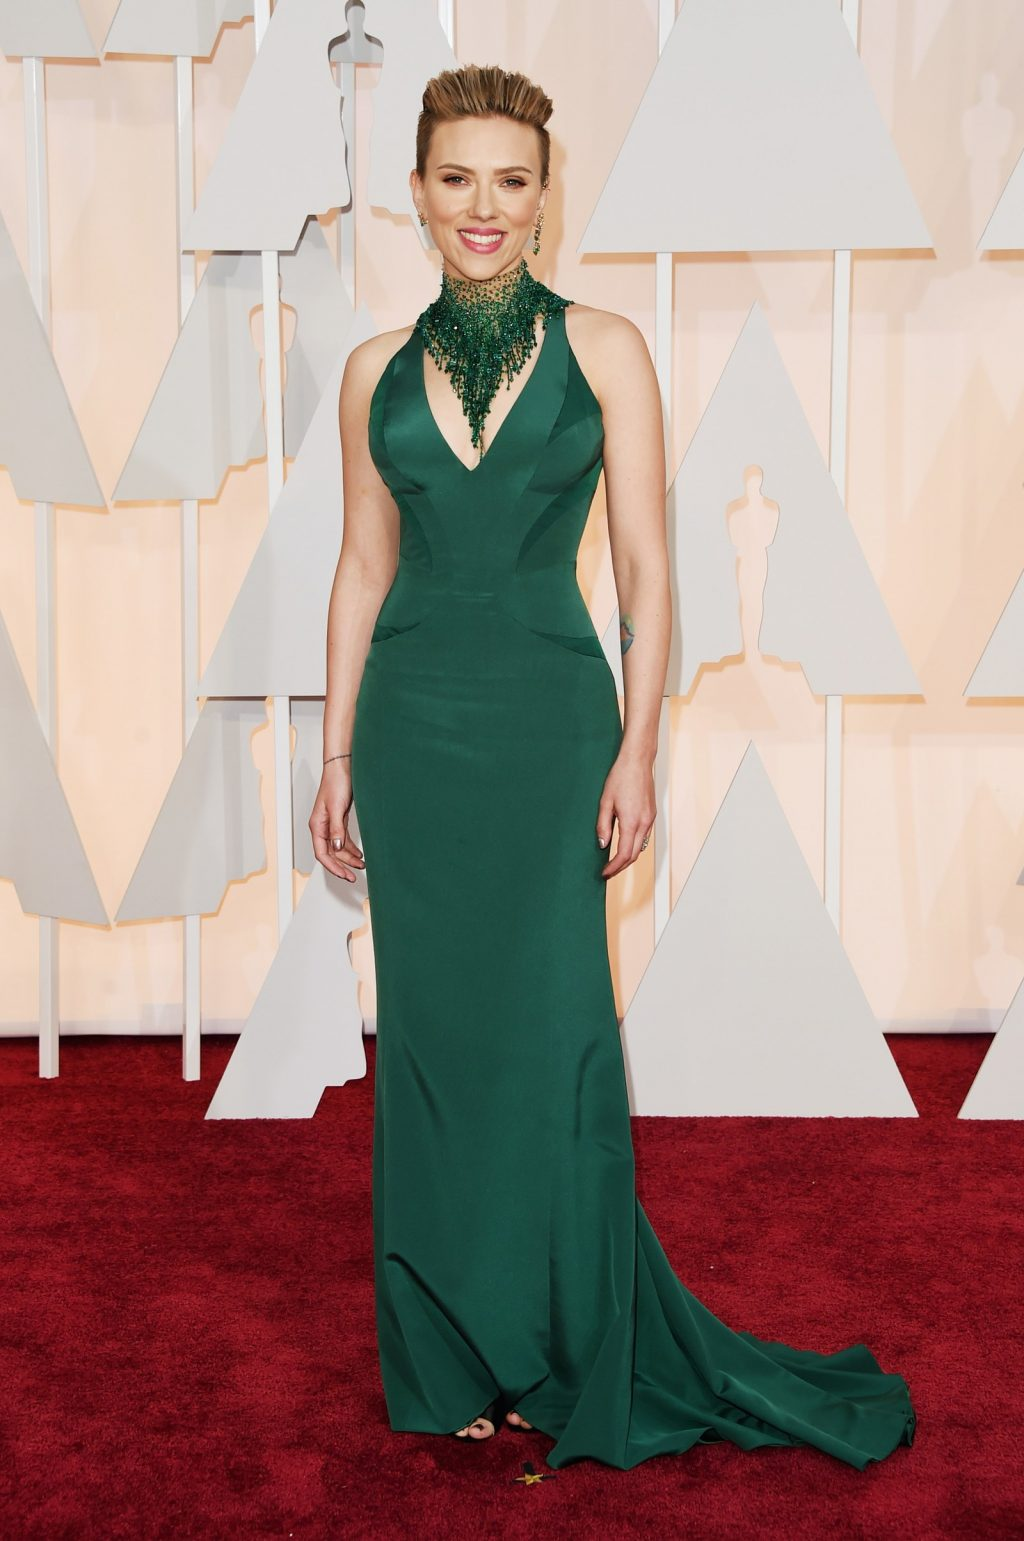 Scarlett Johansson May Be 34 Today, But Her Red Carpet Style? Ageless